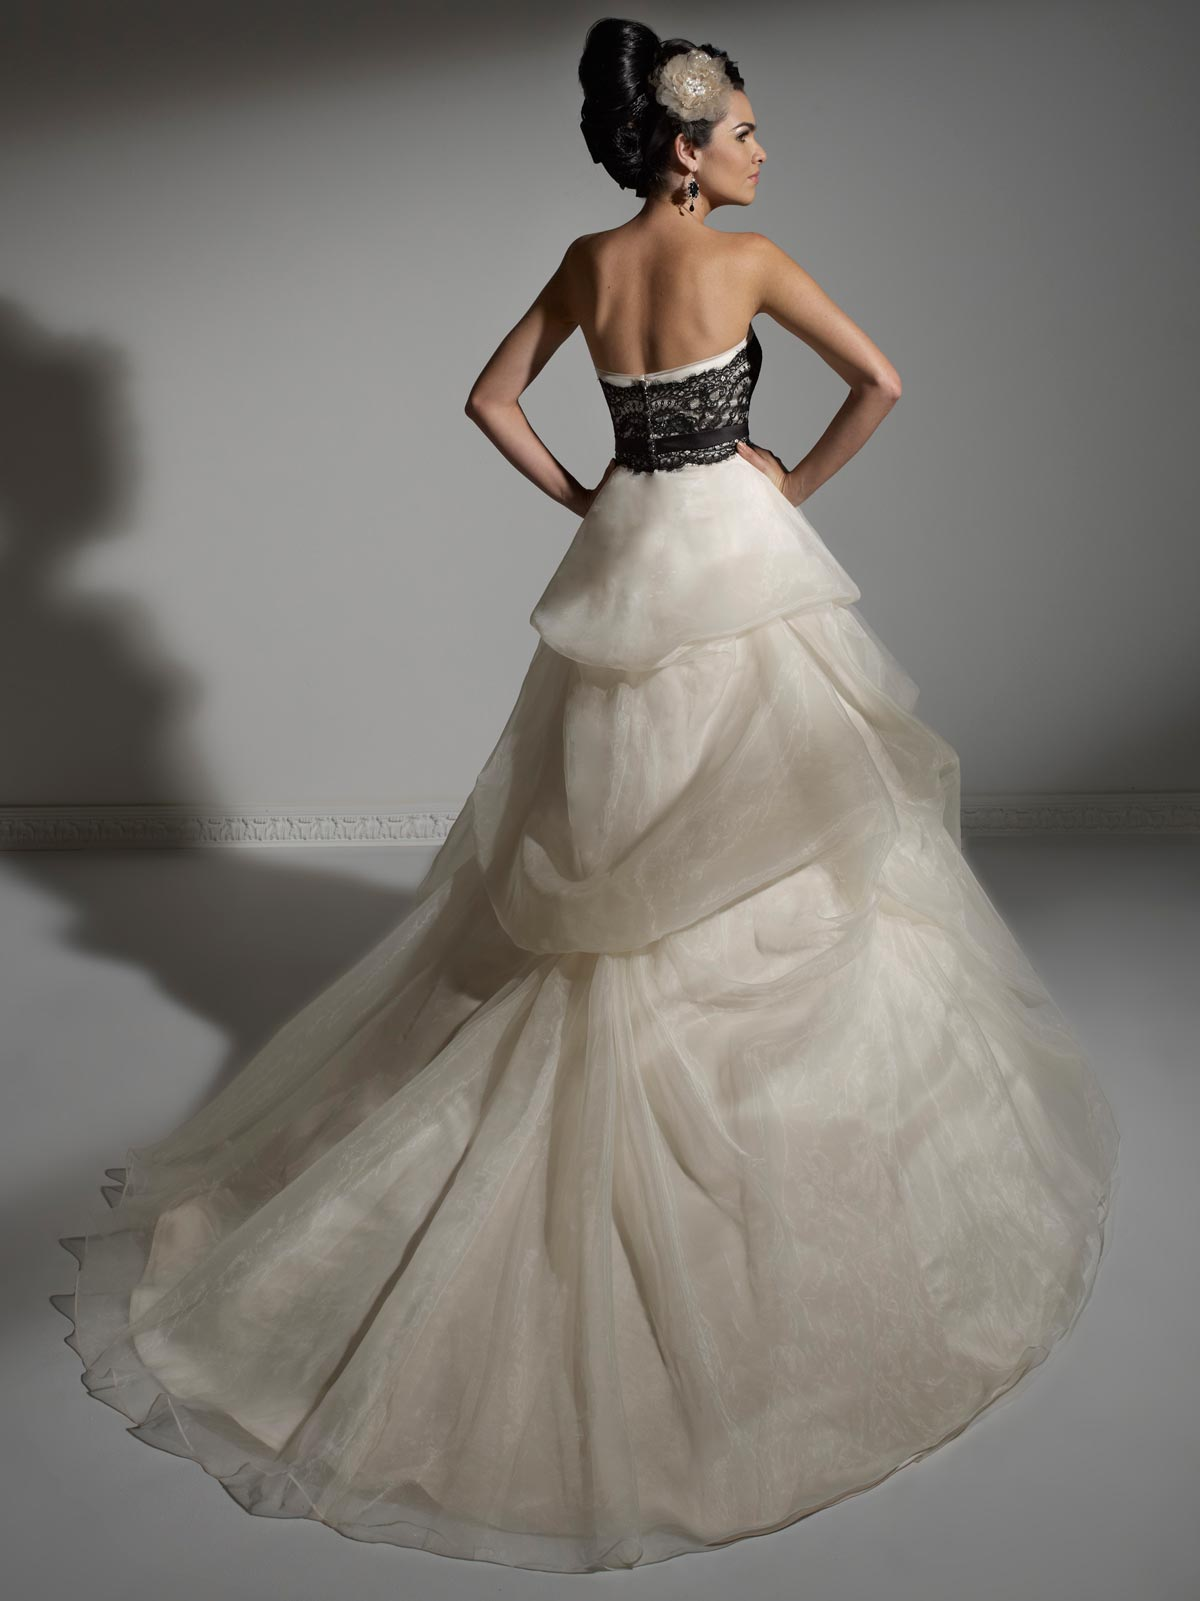 Black and White Colored Wedding Dresses